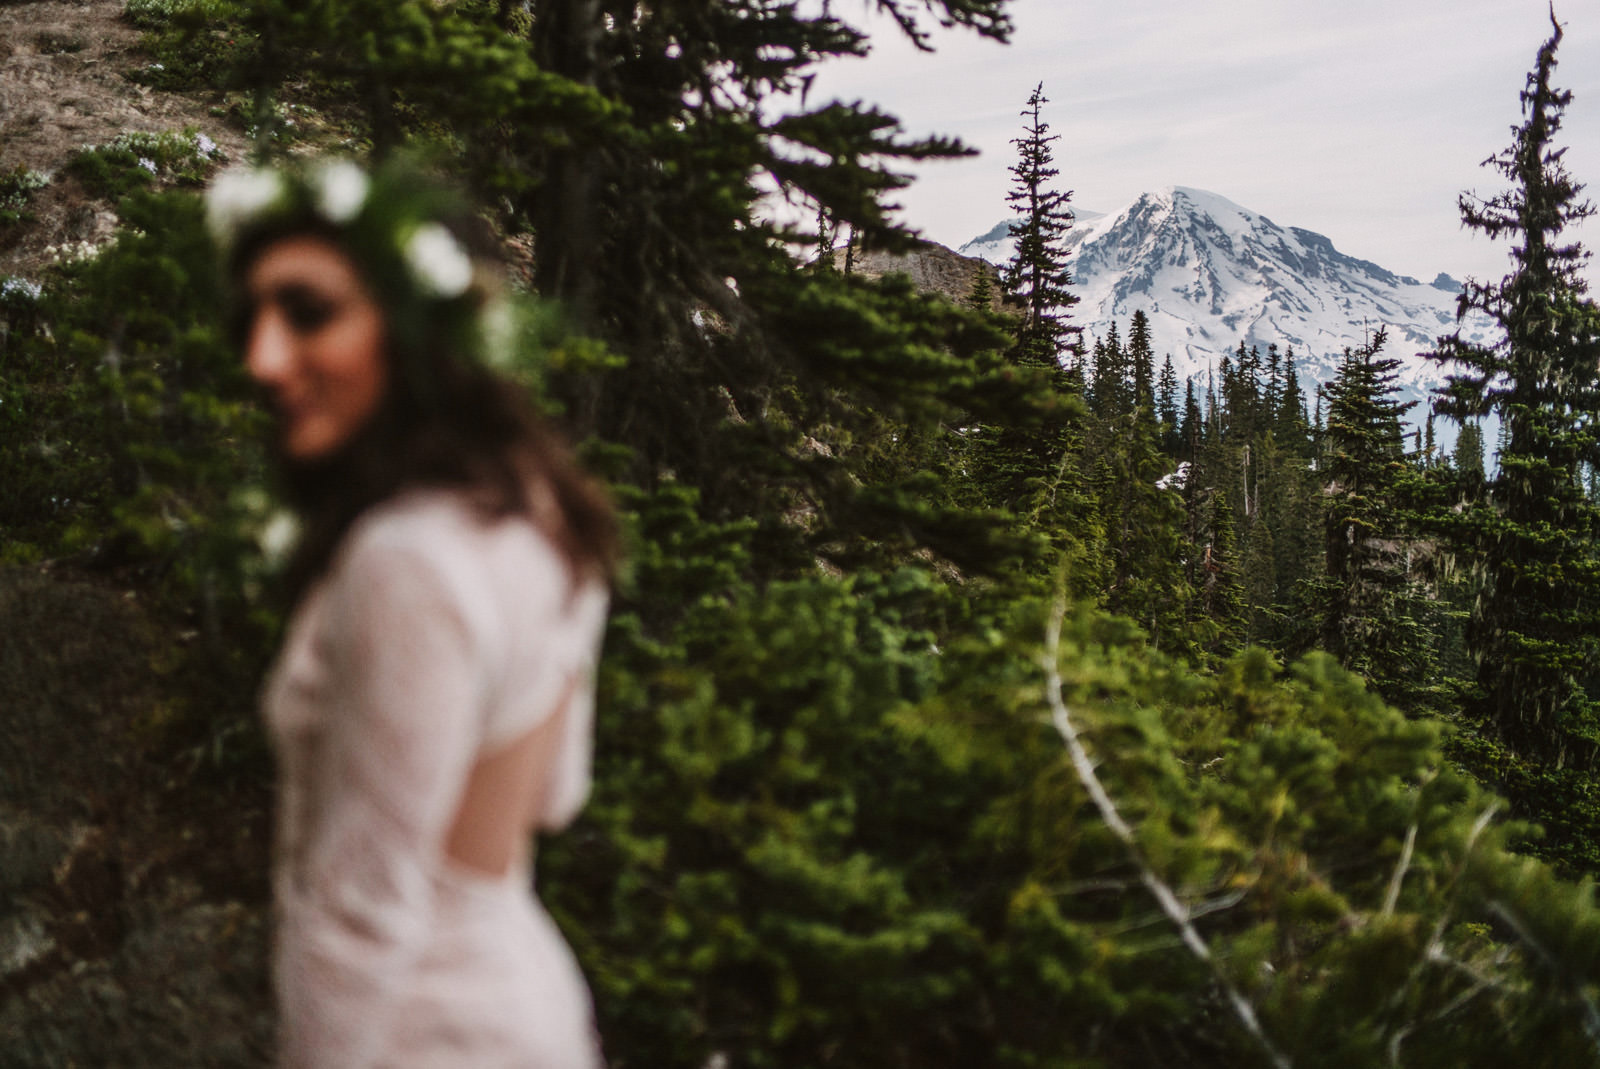 katelynnethan-blog-19 MOUNT RAINIER LOOKOUT ELOPEMENT